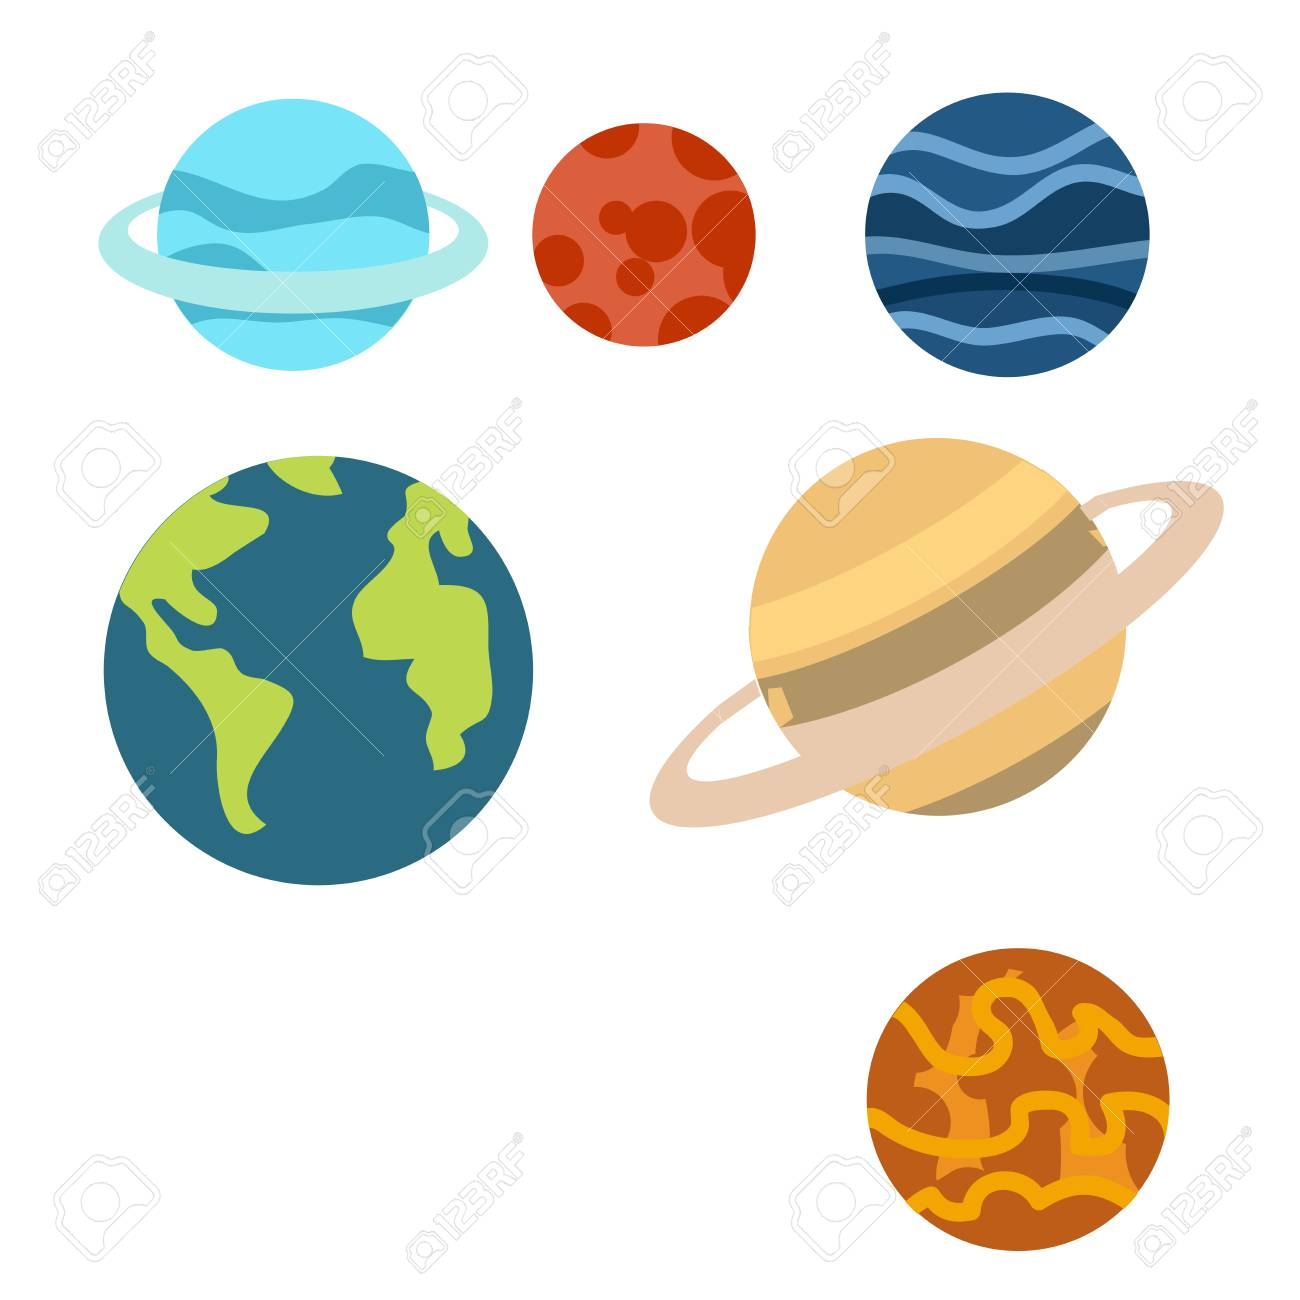 hight resolution of space planets cartoon or space planets clipart cartoon isolated on white background illustration stock vector